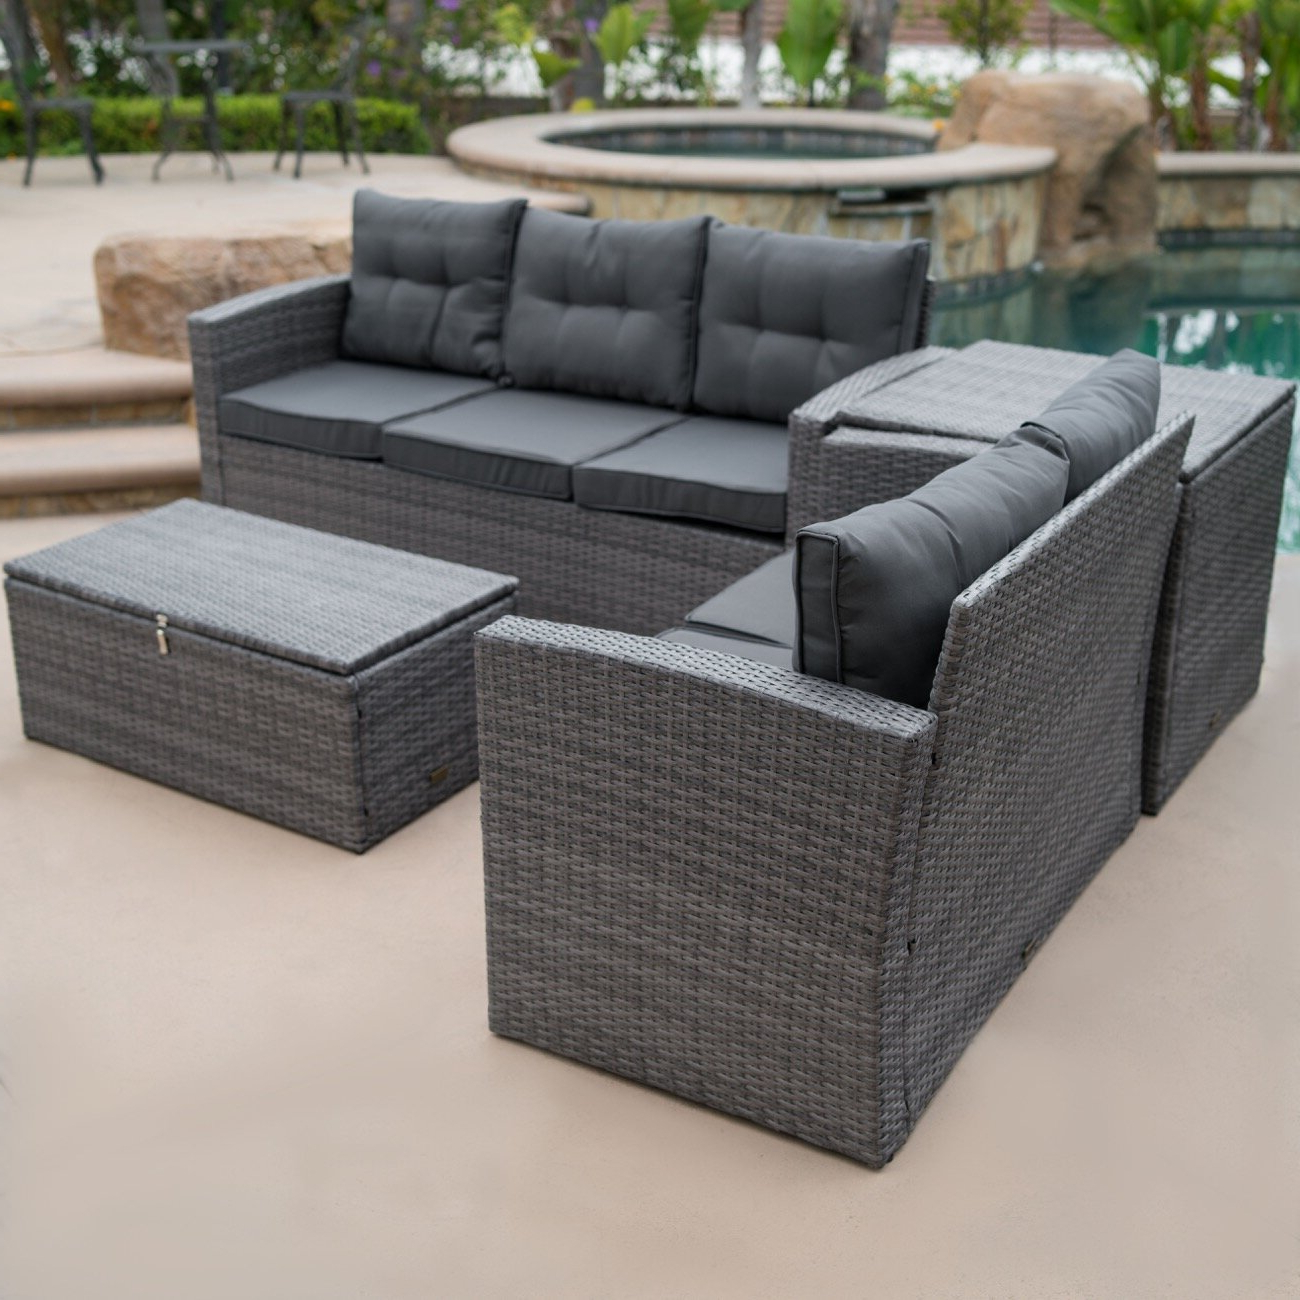 Most Recently Released Rowley Patio Sectional With Cushions In Eldora Patio Sectionals With Cushions (Gallery 19 of 25)